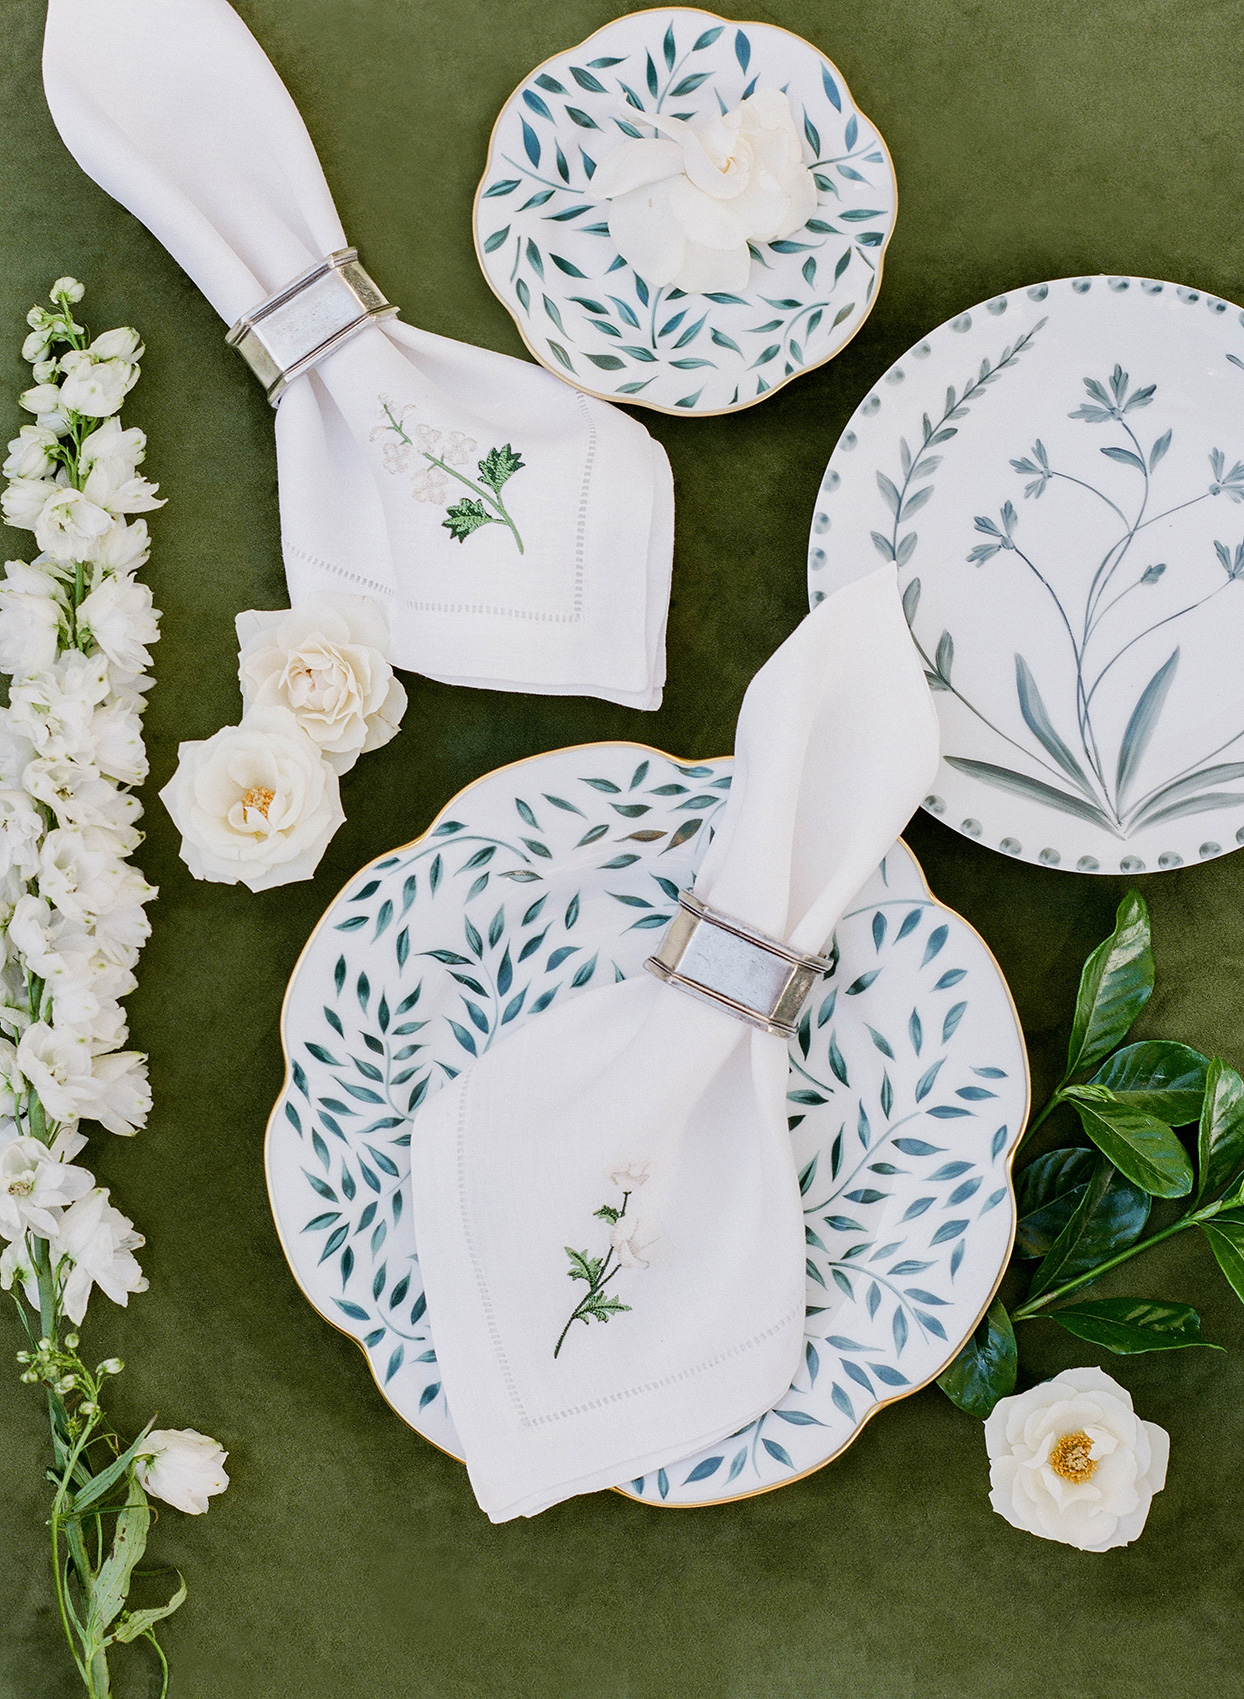 elegant white napkins on antique china plates